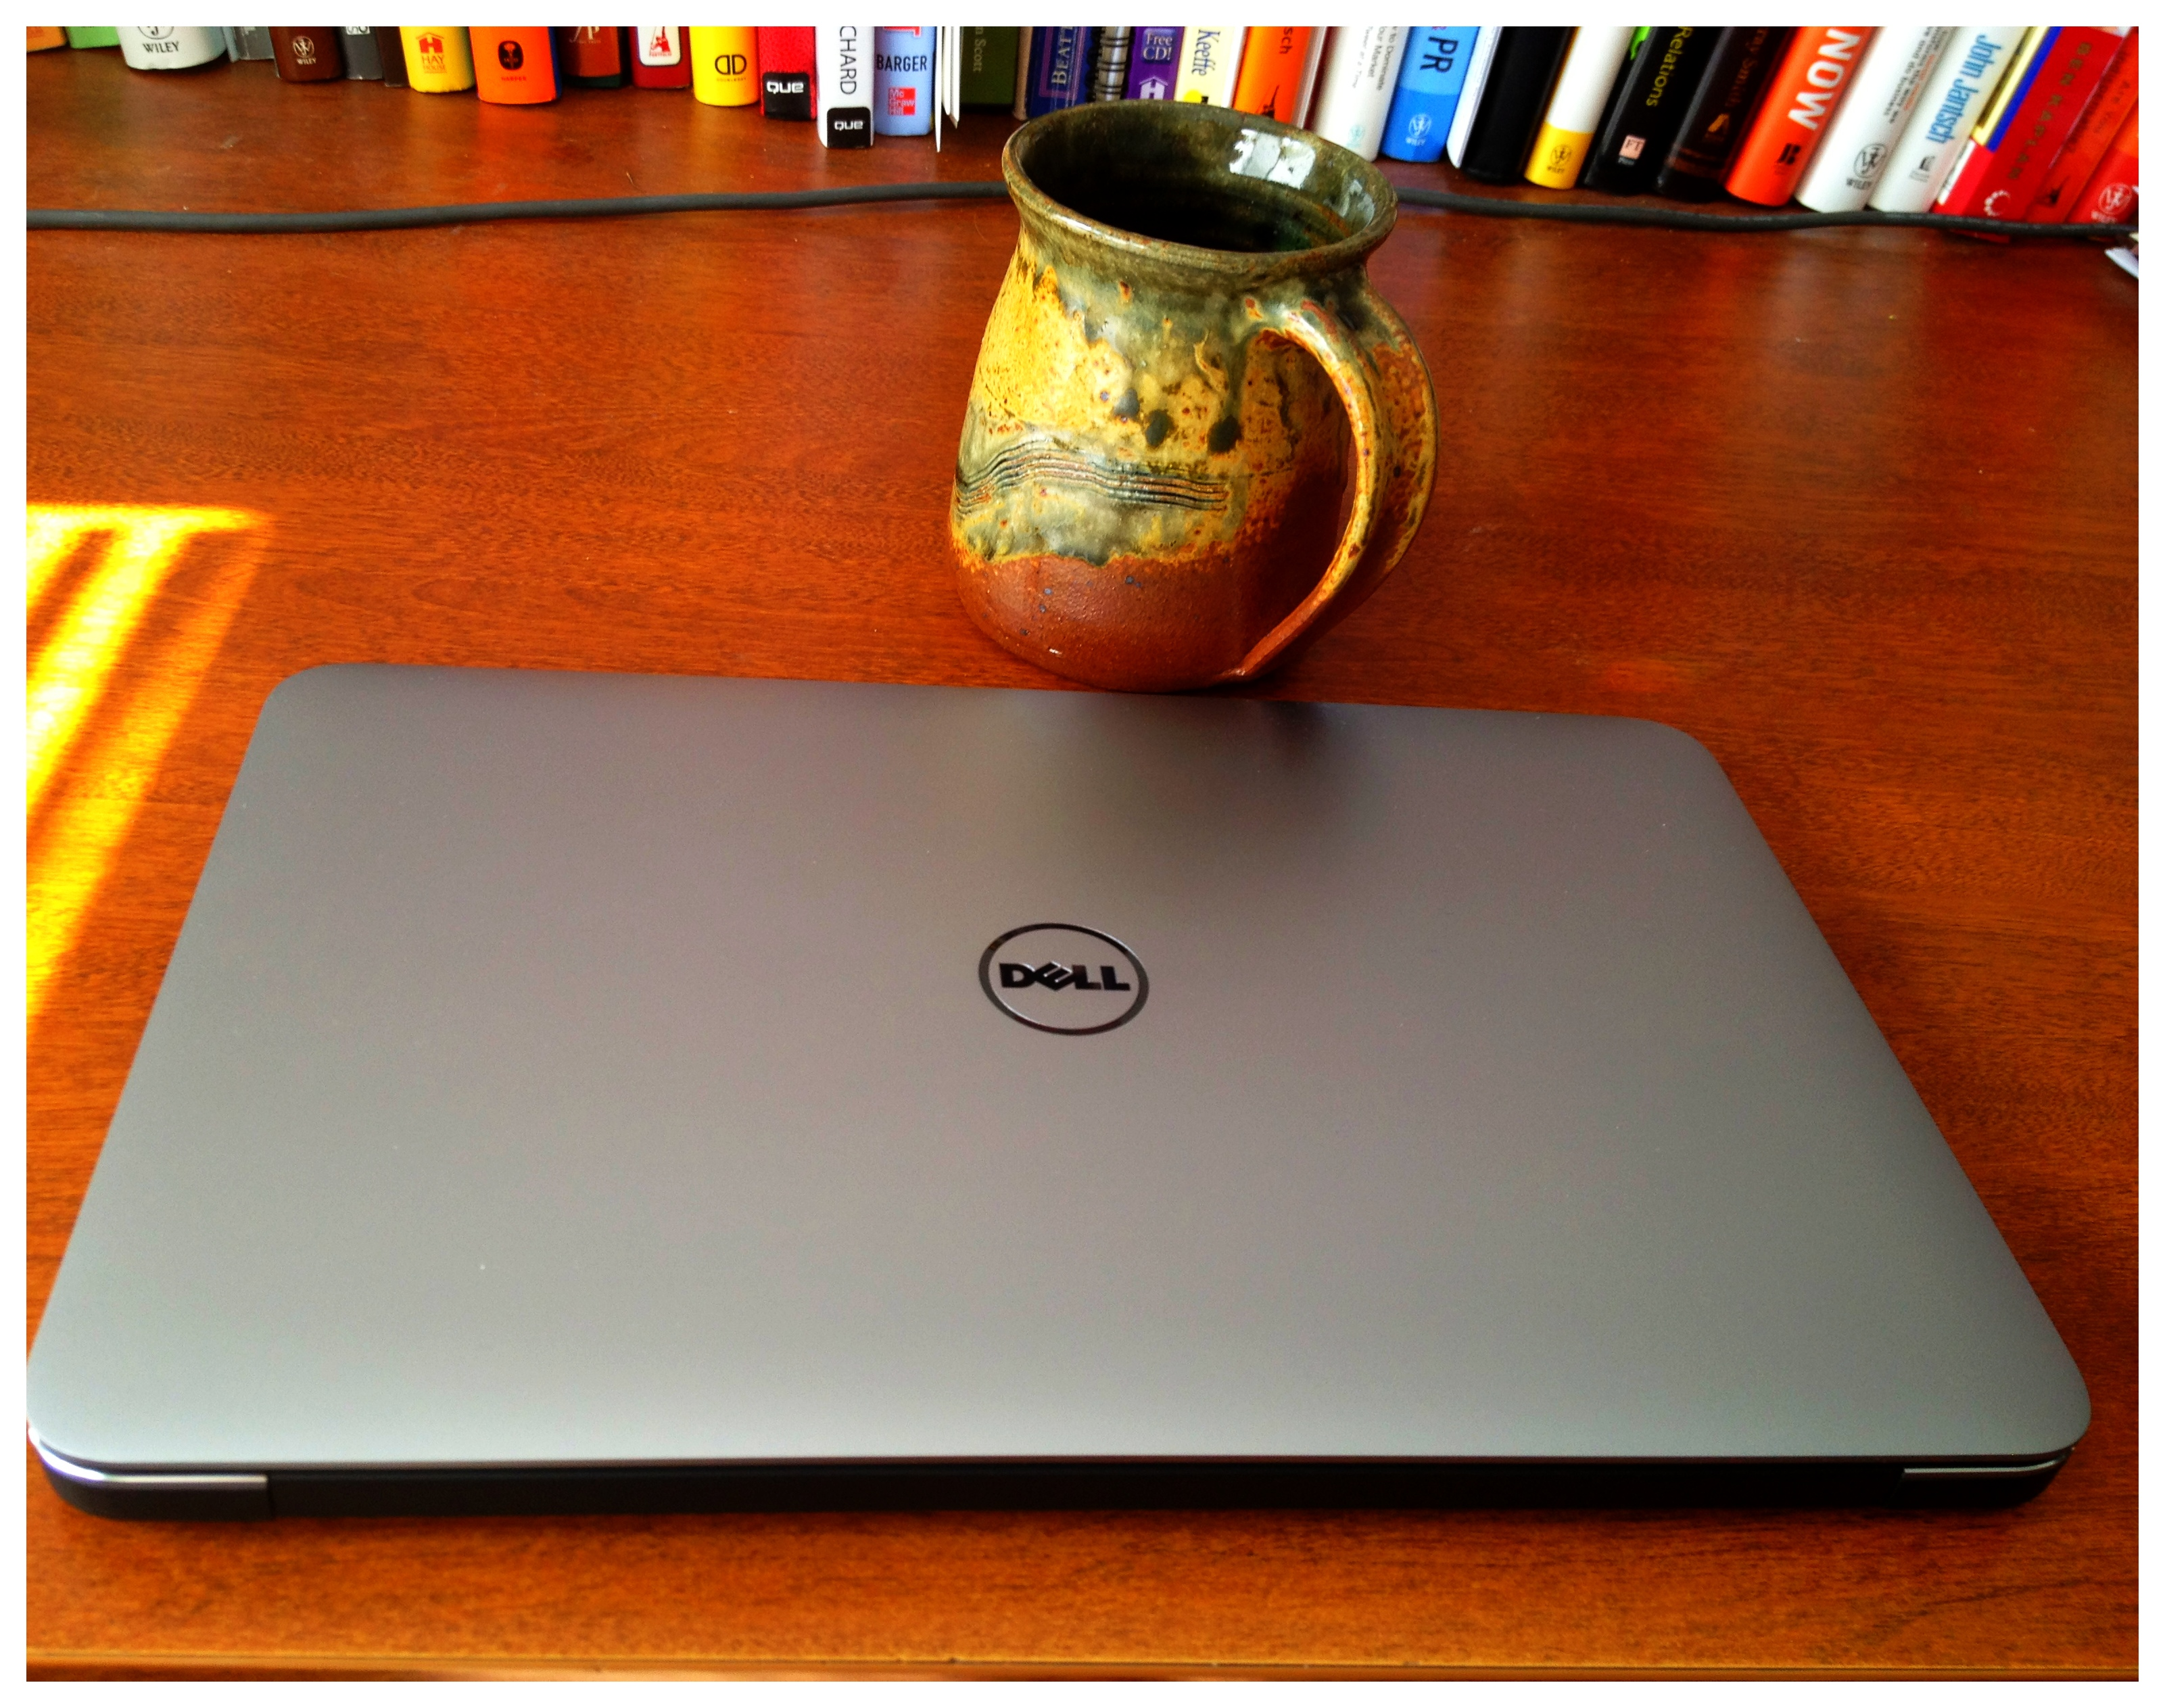 image of Dell XPS 13 on desktop